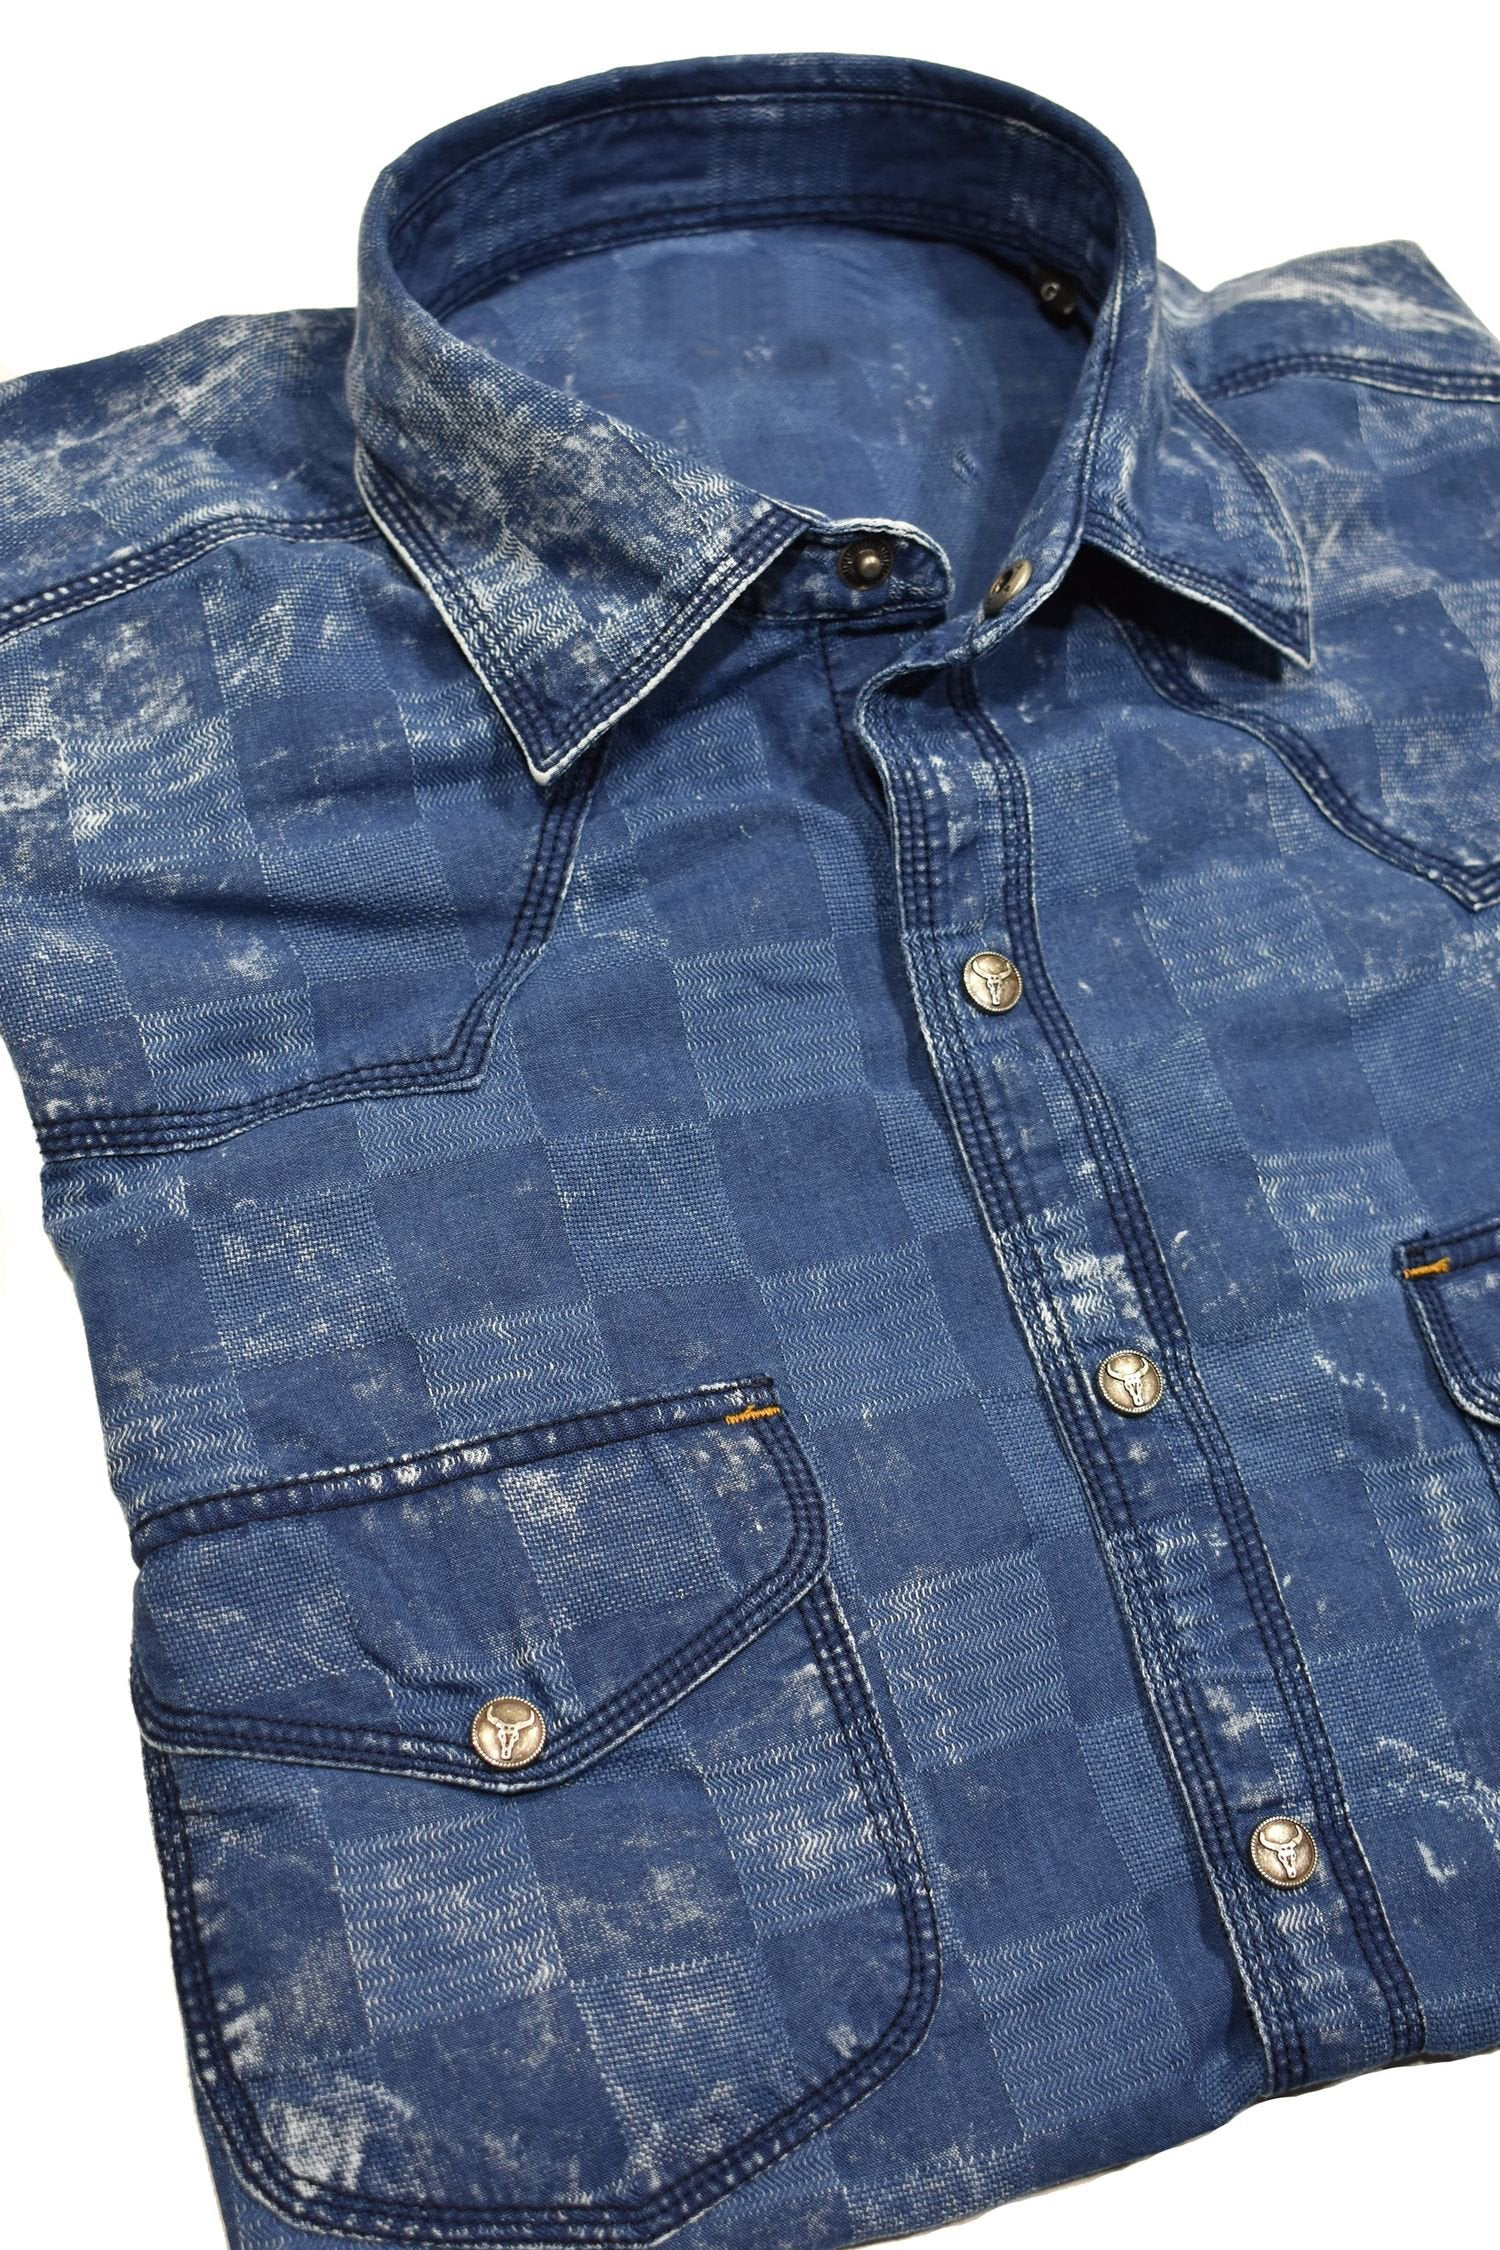 RJ010W Box Indigo Washed Shirt - Marcello Sport